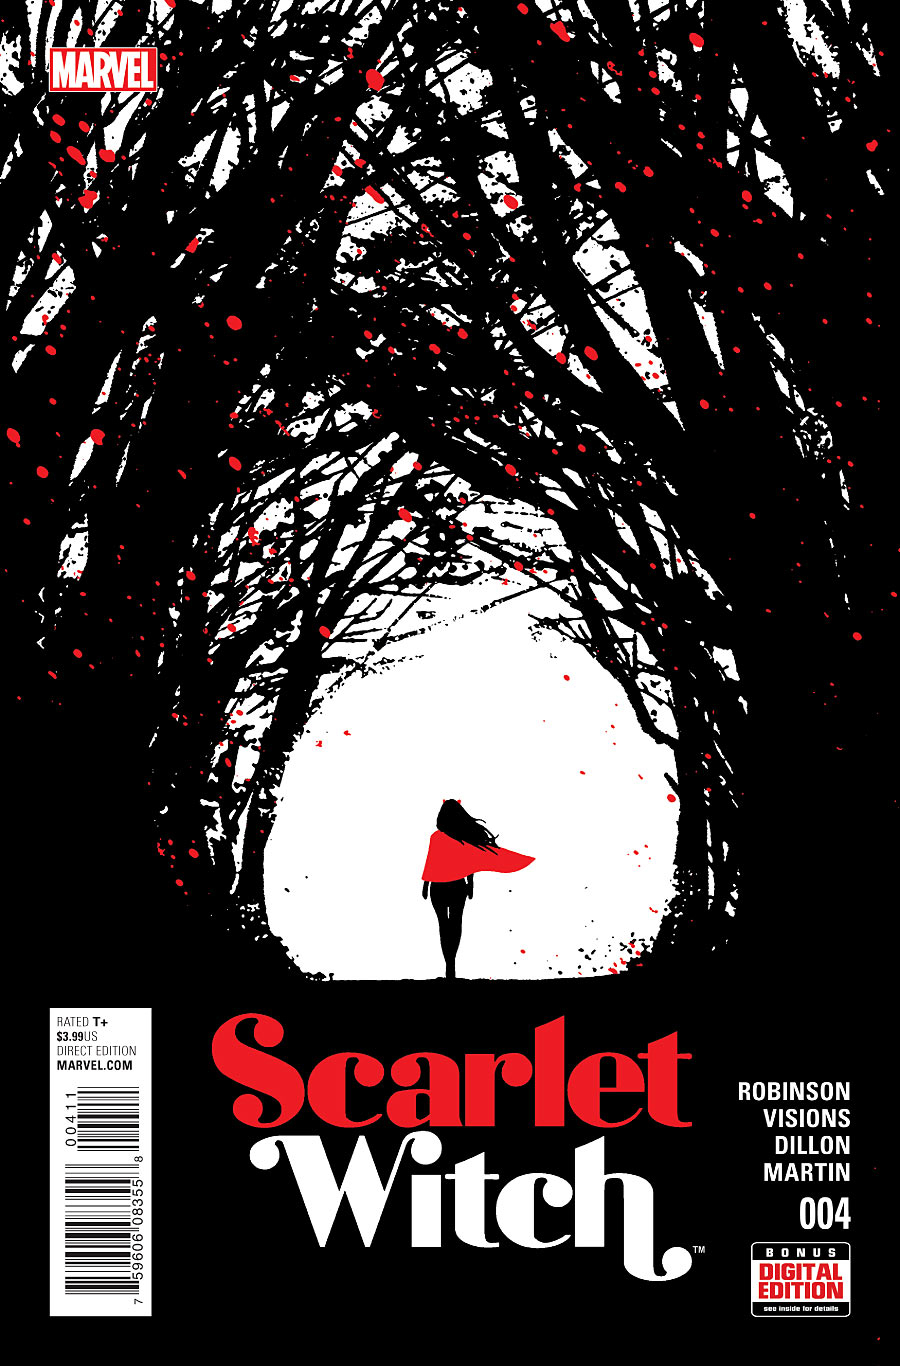 SCARLET WITCH #4